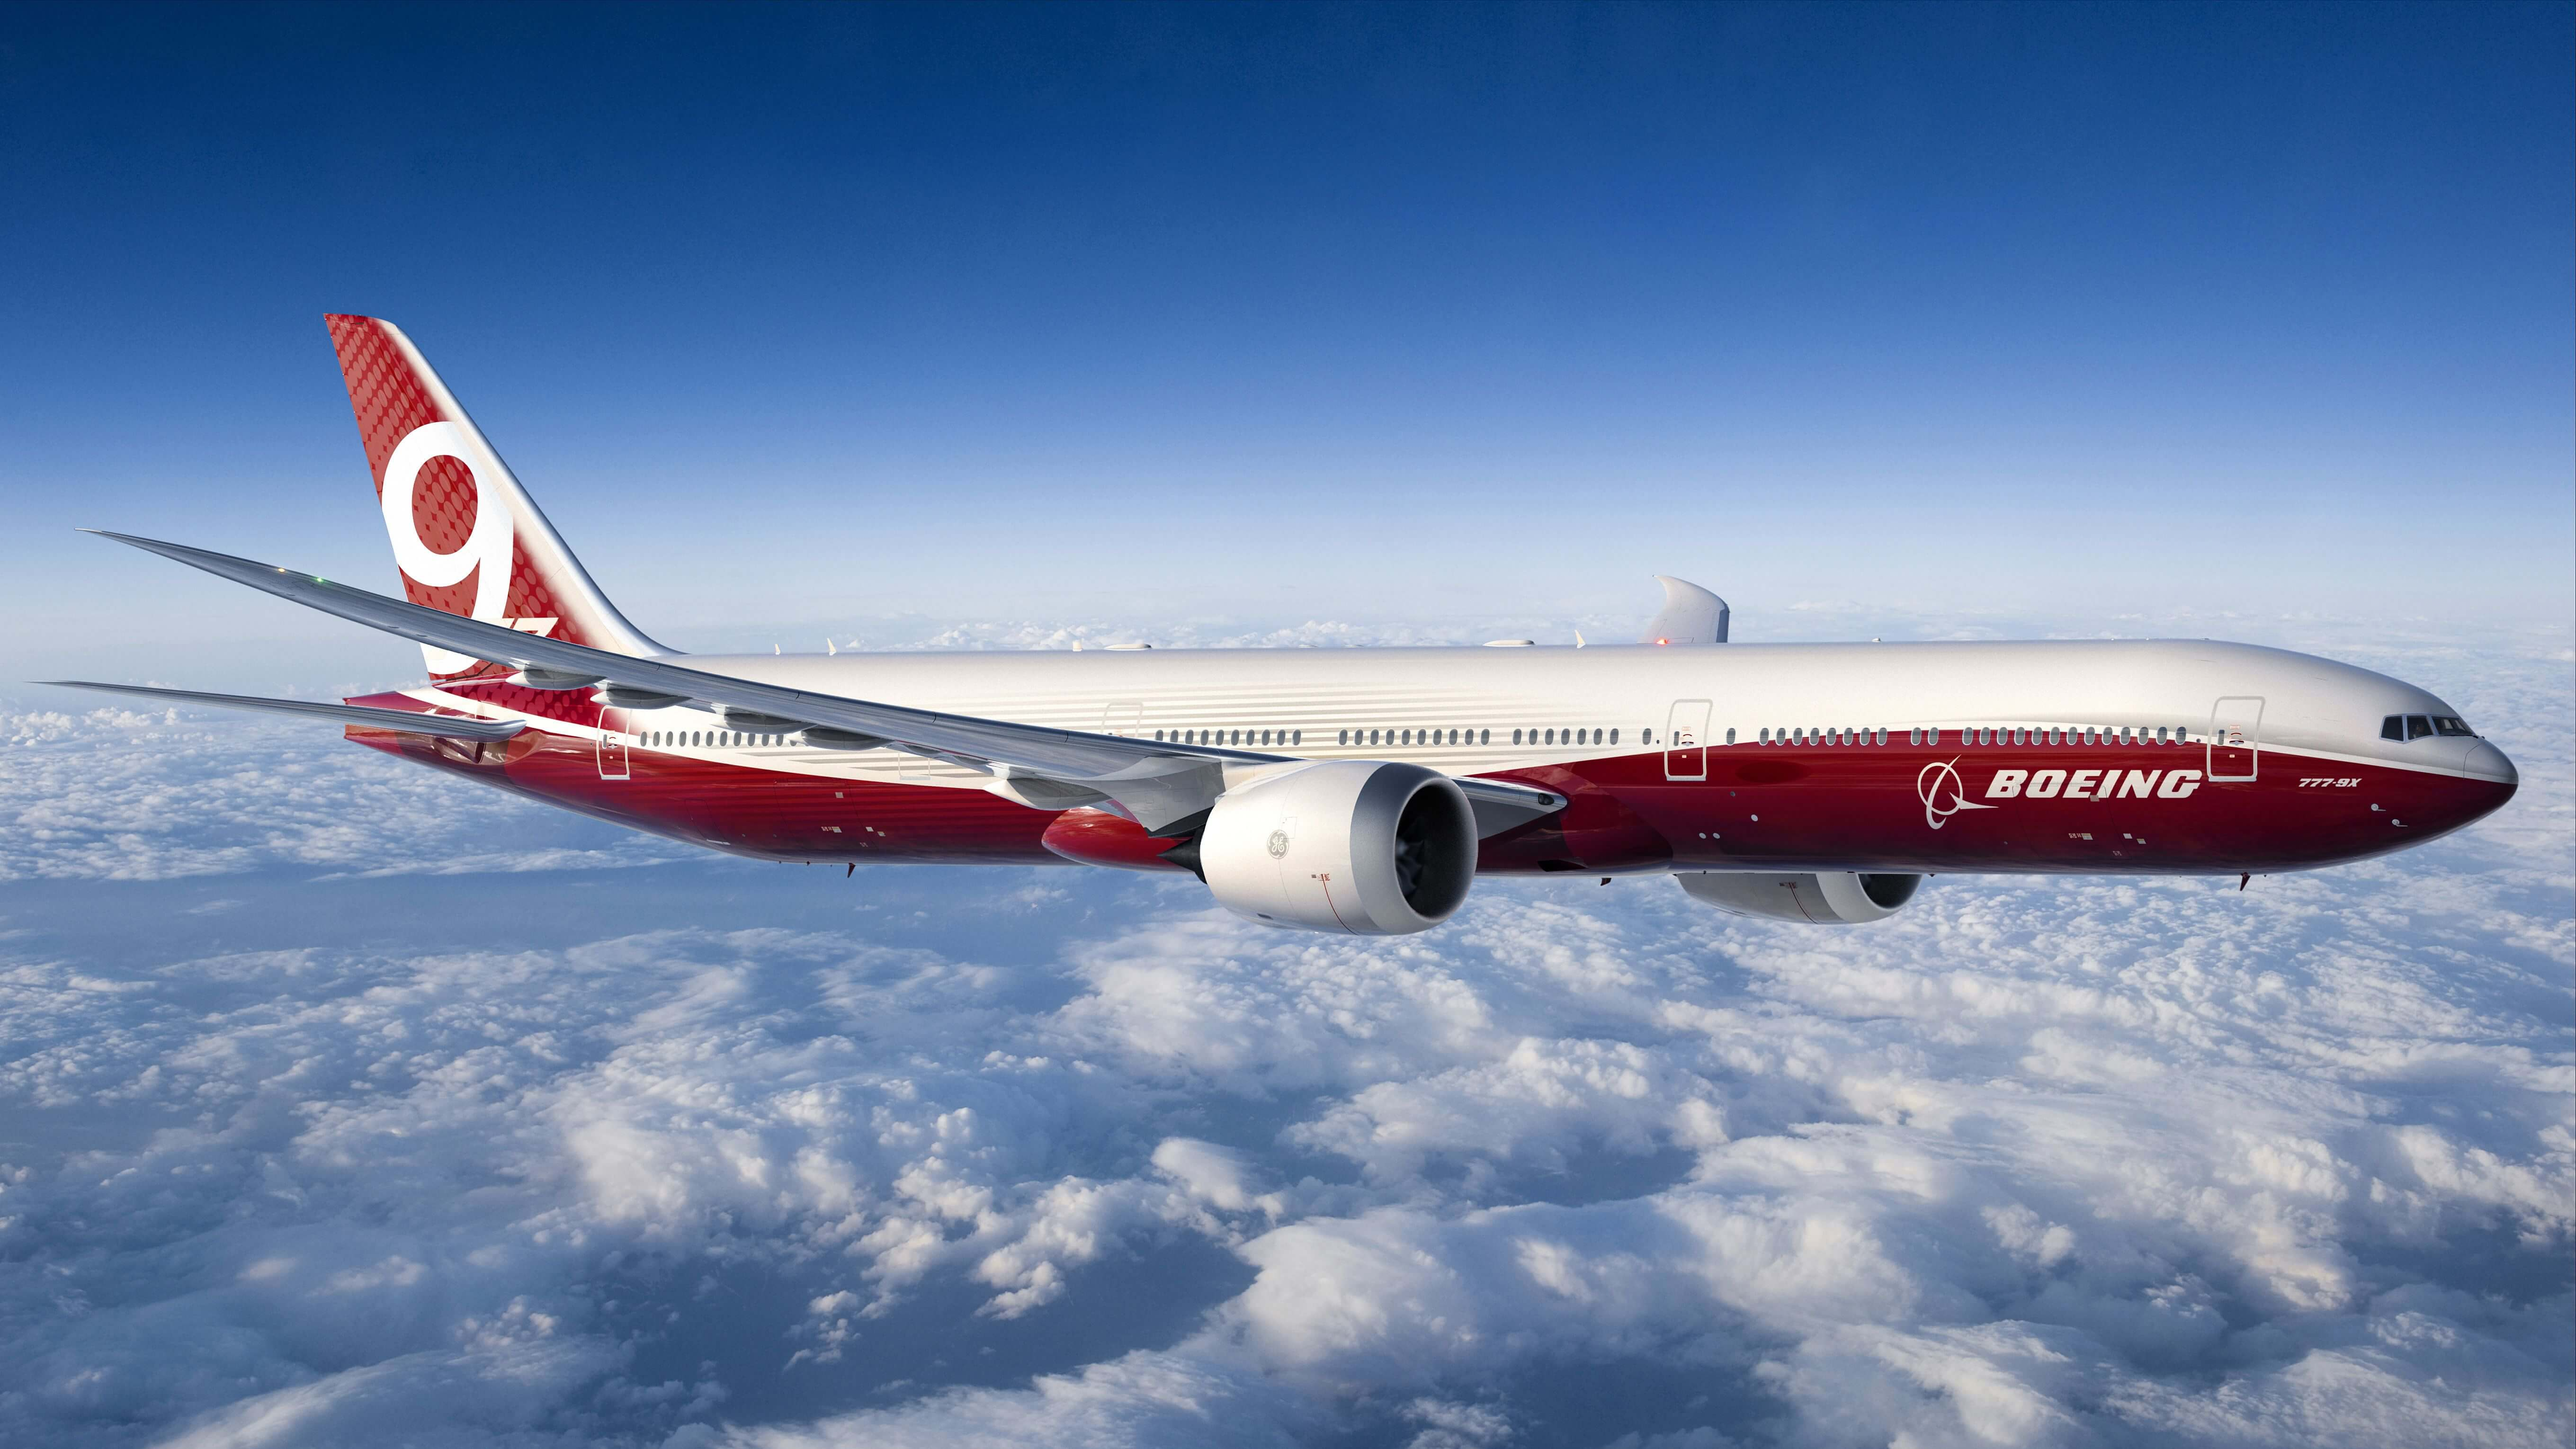 Boeing's Latest 777X Aircraft